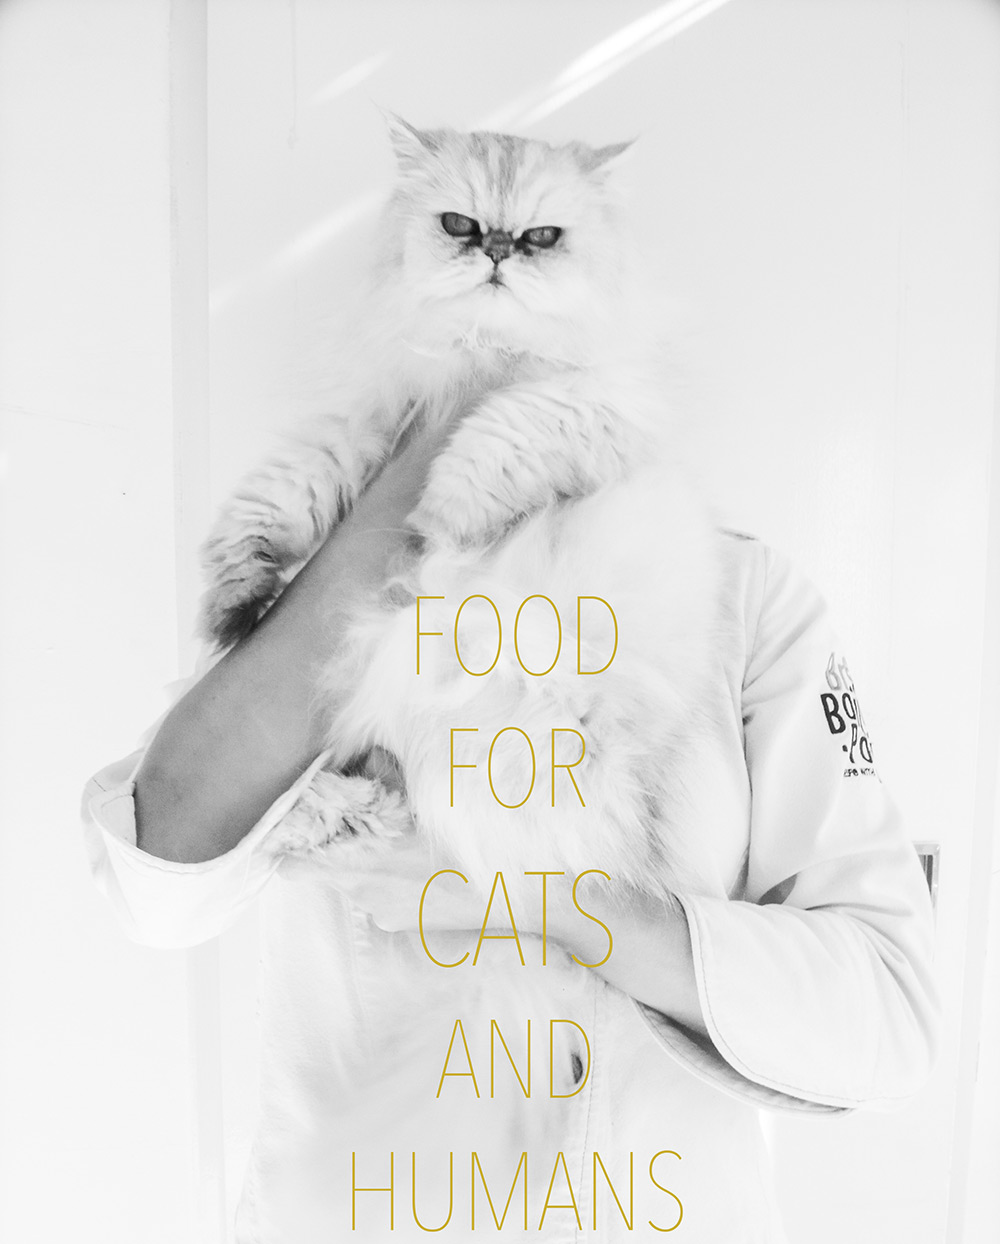 Food for cats and humans — Food to meet you.